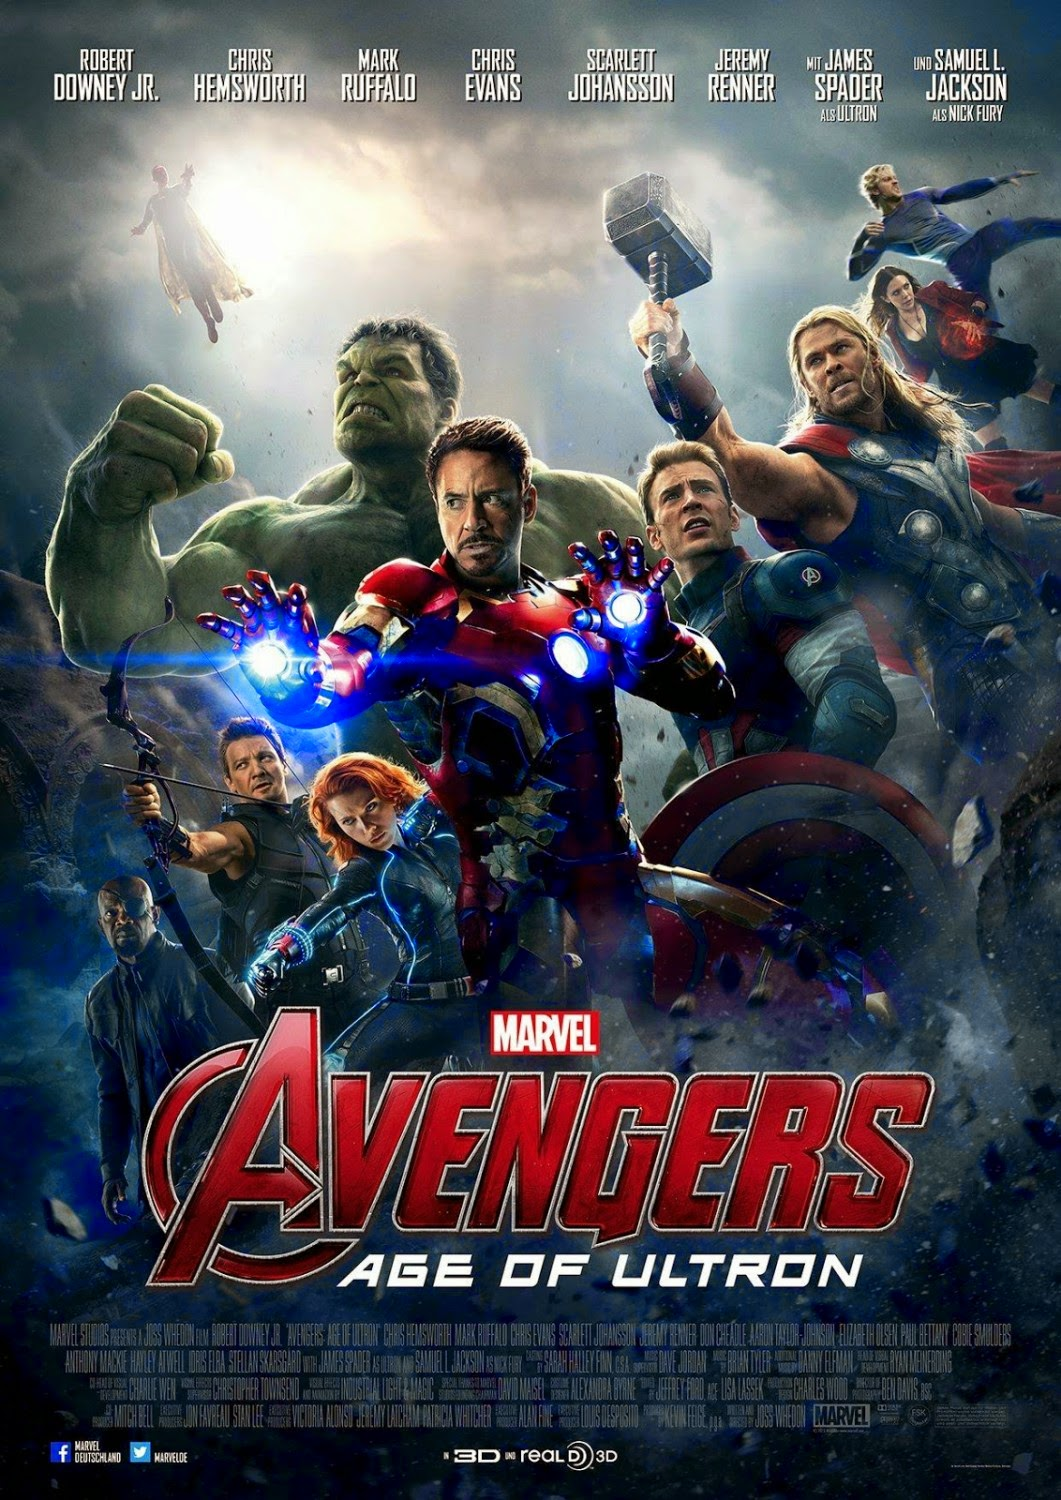 Marvel's Avengers Age of Ultron Final International Theatrical One Sheet Movie Poster